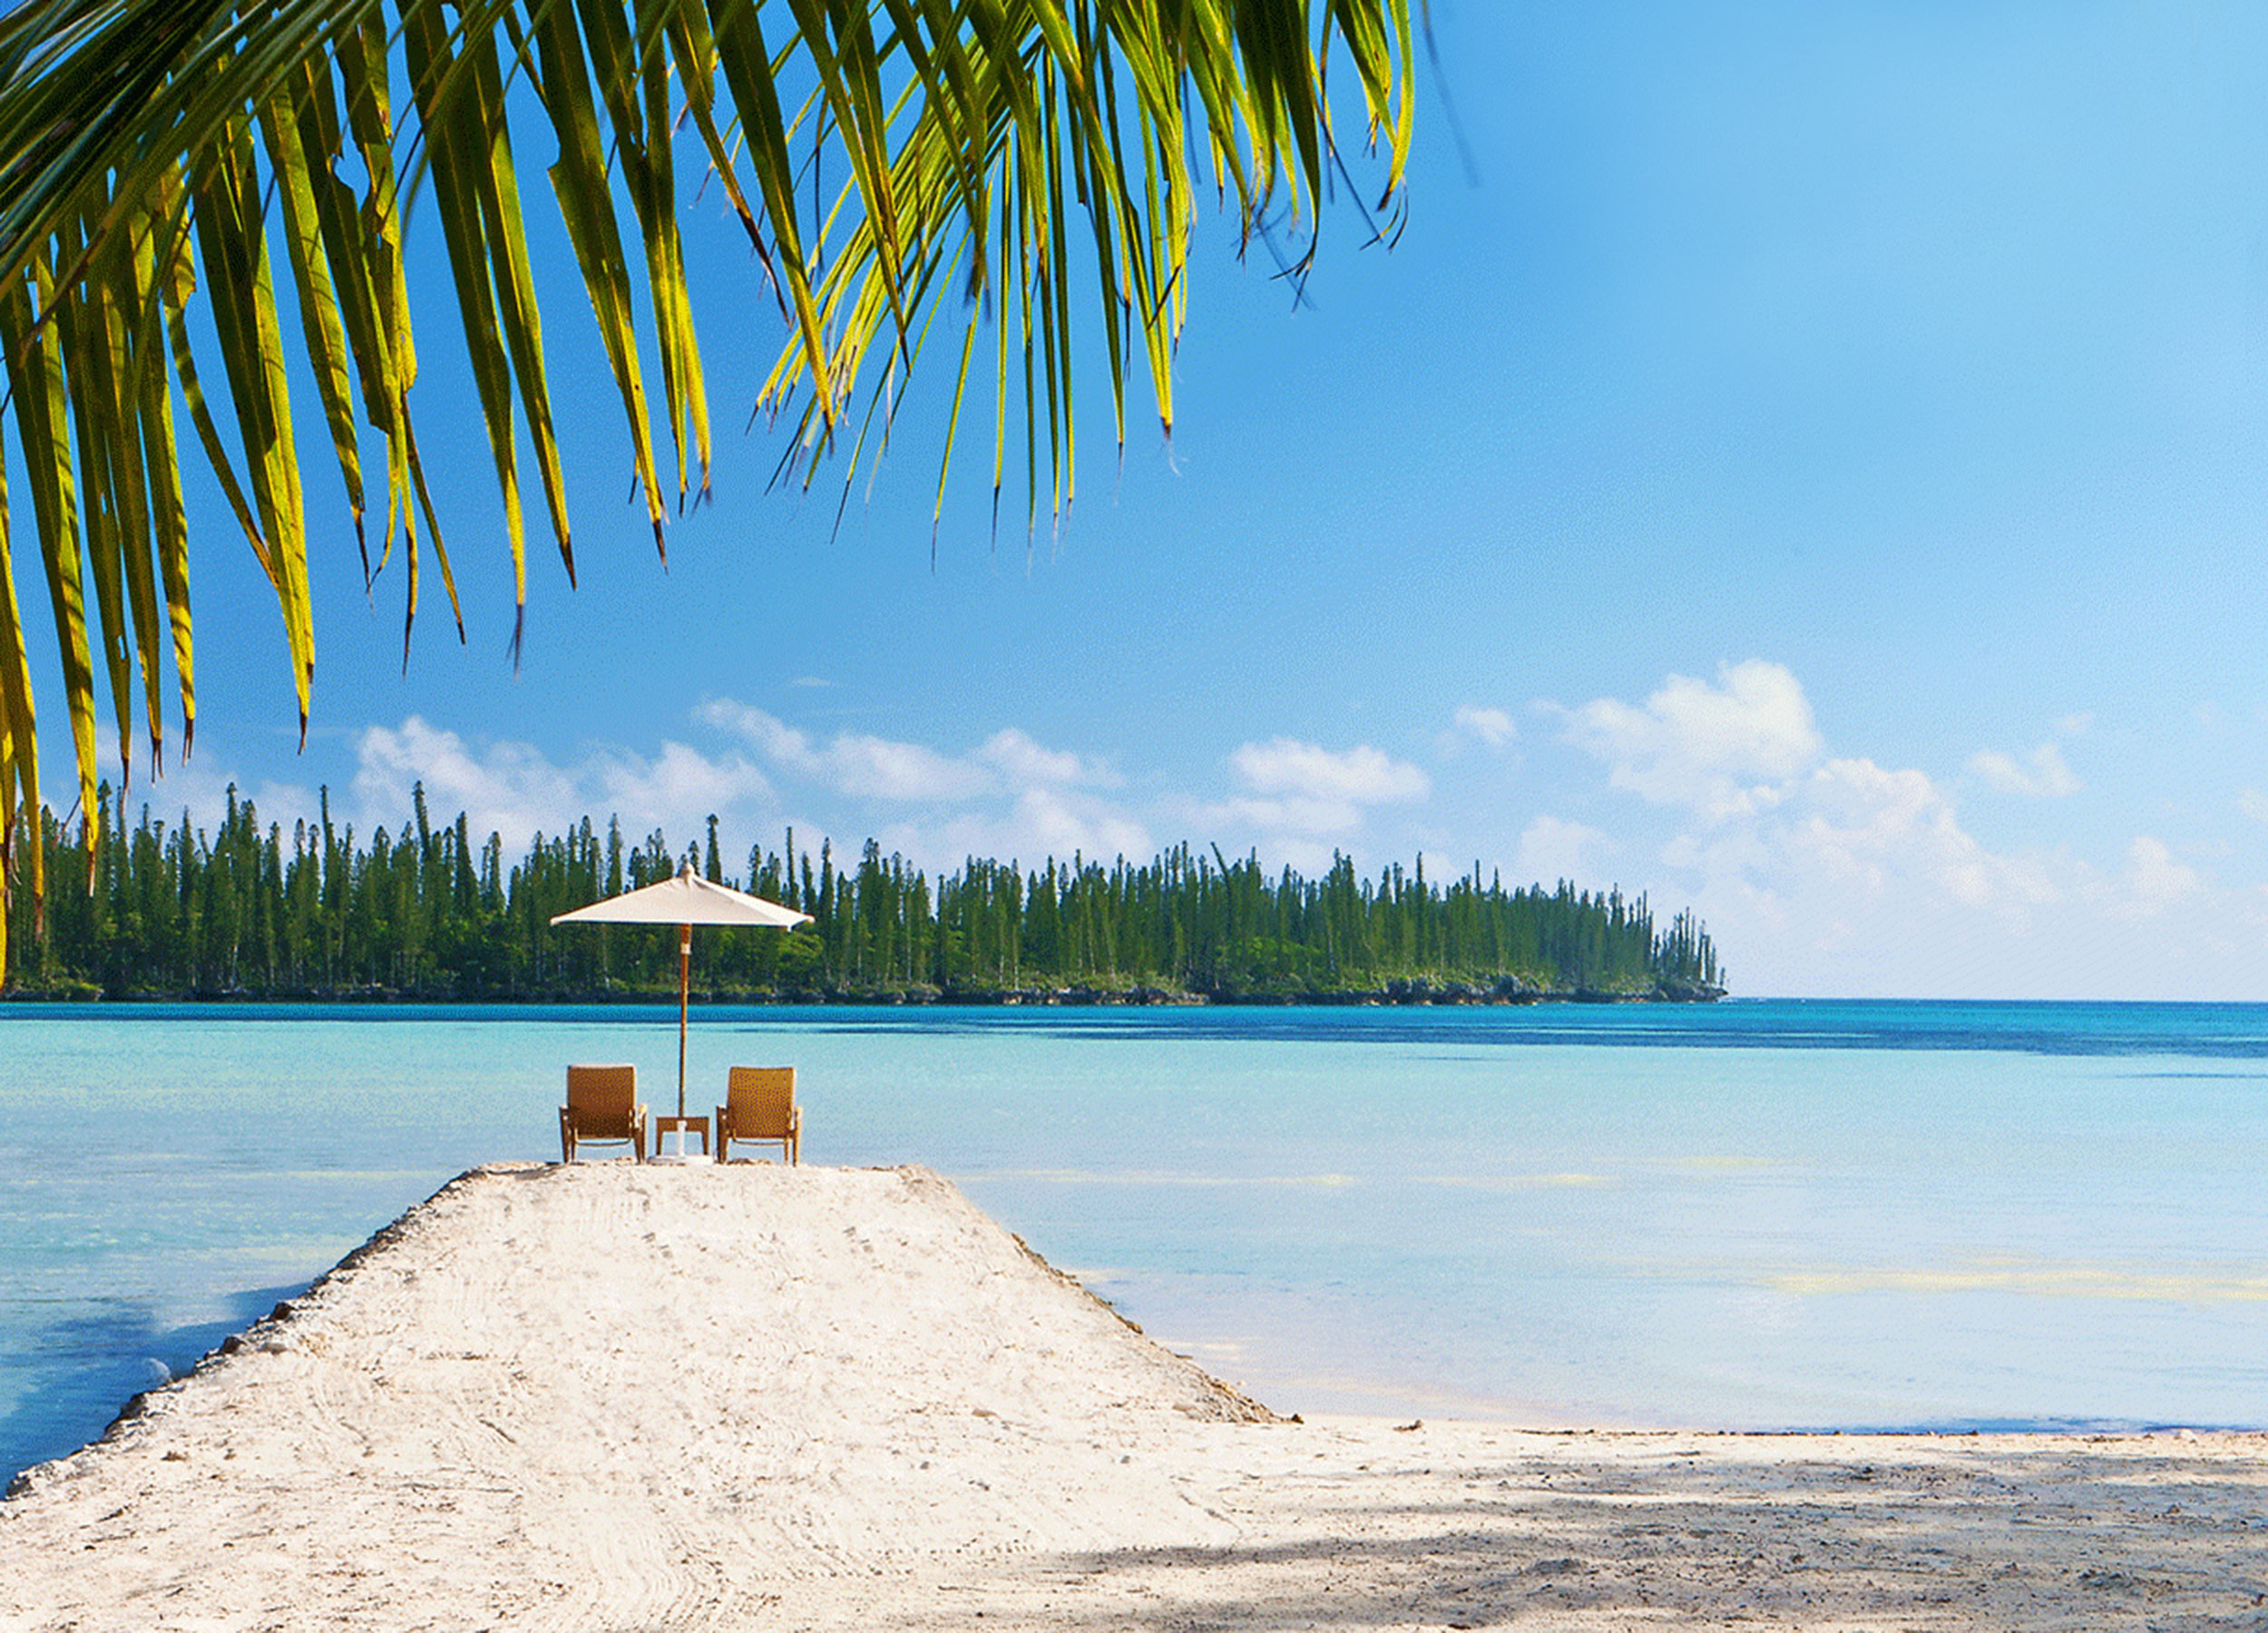 Two chairs under an umbrella on a sandspit looking out across the lagoon to a pine covered peninsula, New Caledonia